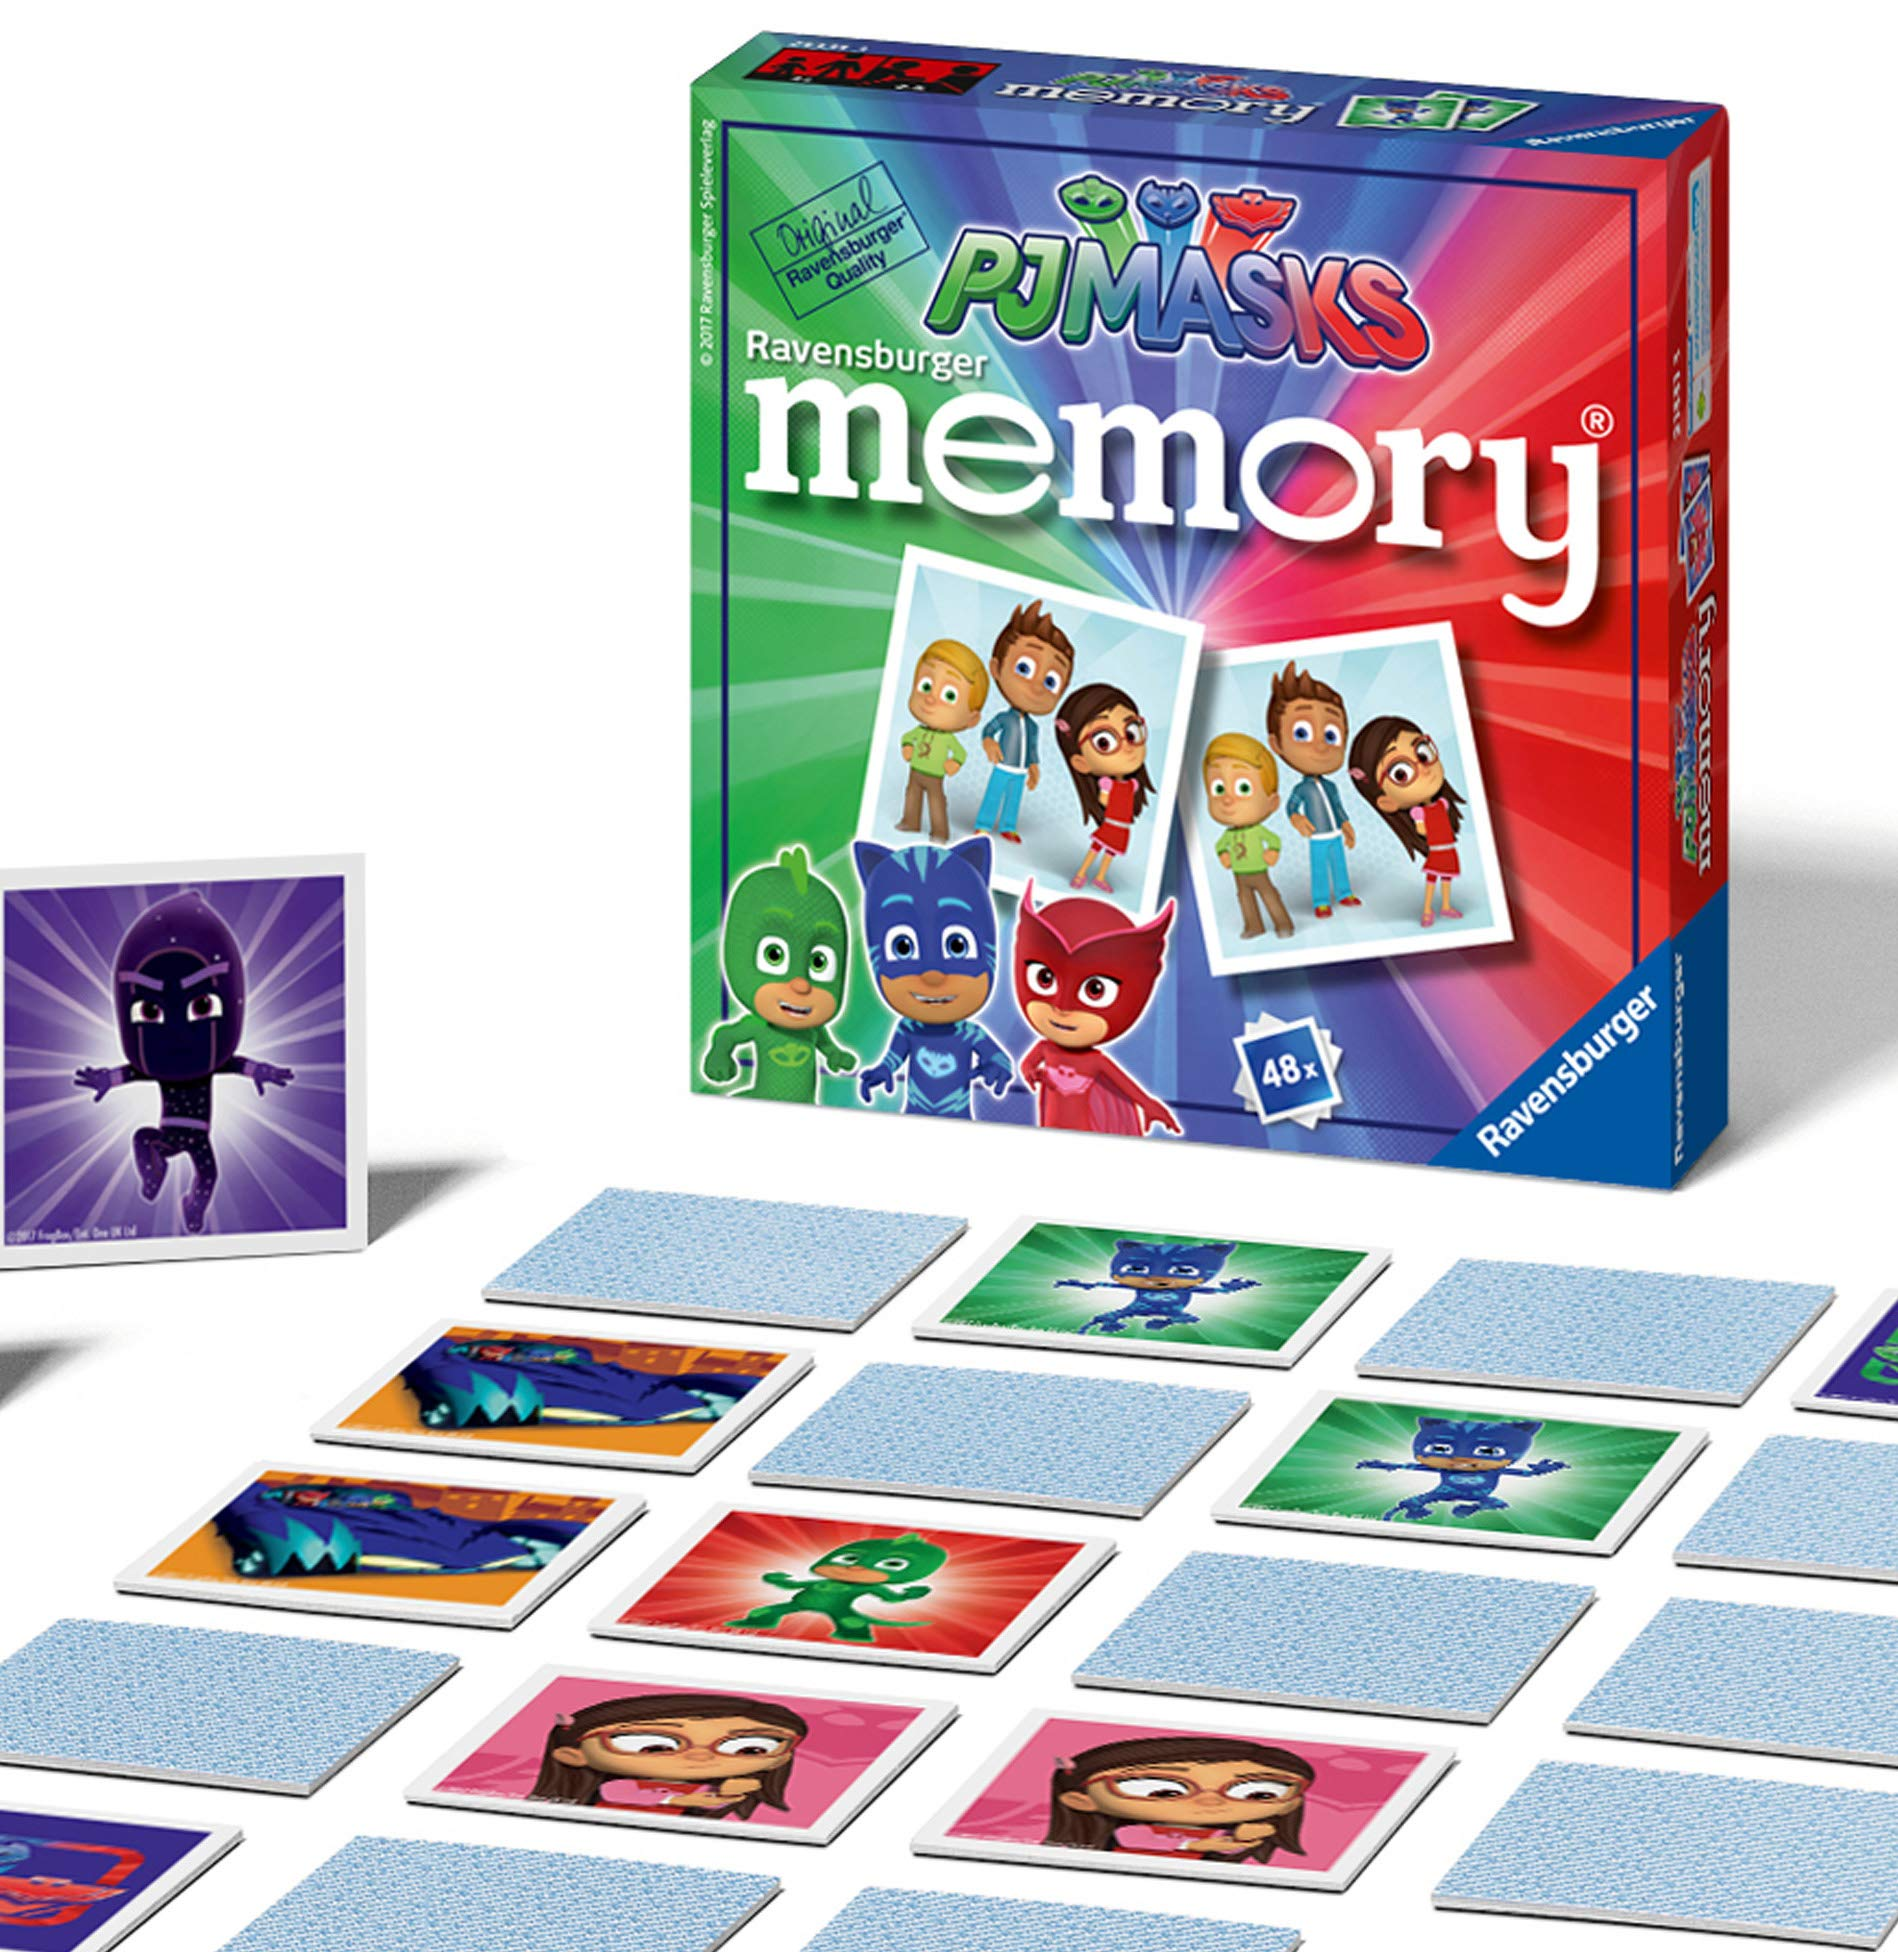 Ravensburger PJ Masks Mini Memory Game - Matching Picture Snap Pairs Game For Kids Age 3 Years and Up